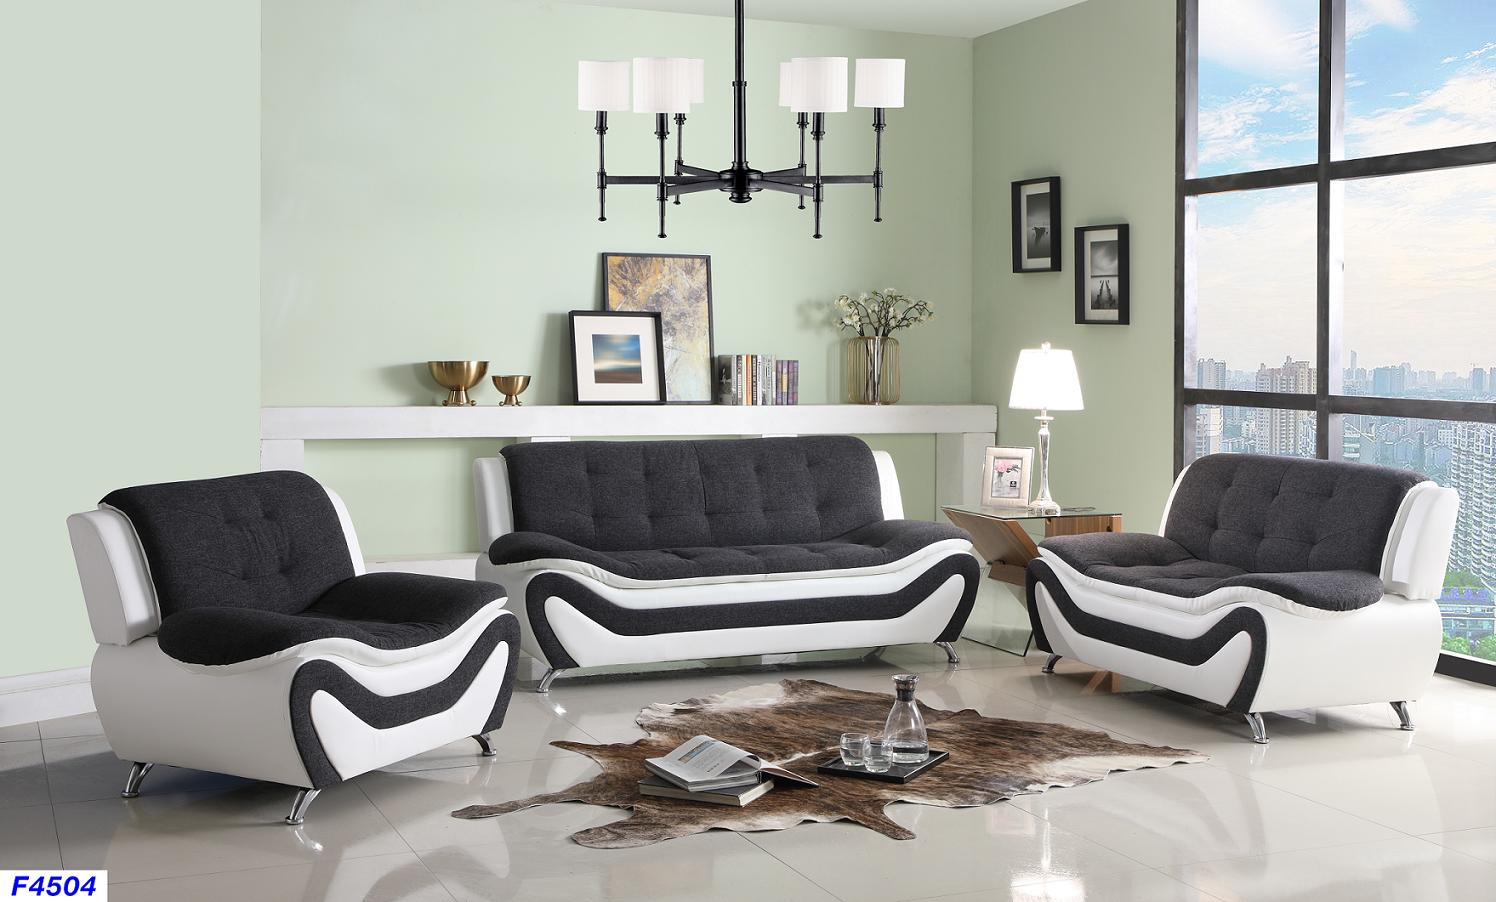 Phenomenal Black White Faux Leather Fabric Sofa Love And Chair Ocoug Best Dining Table And Chair Ideas Images Ocougorg